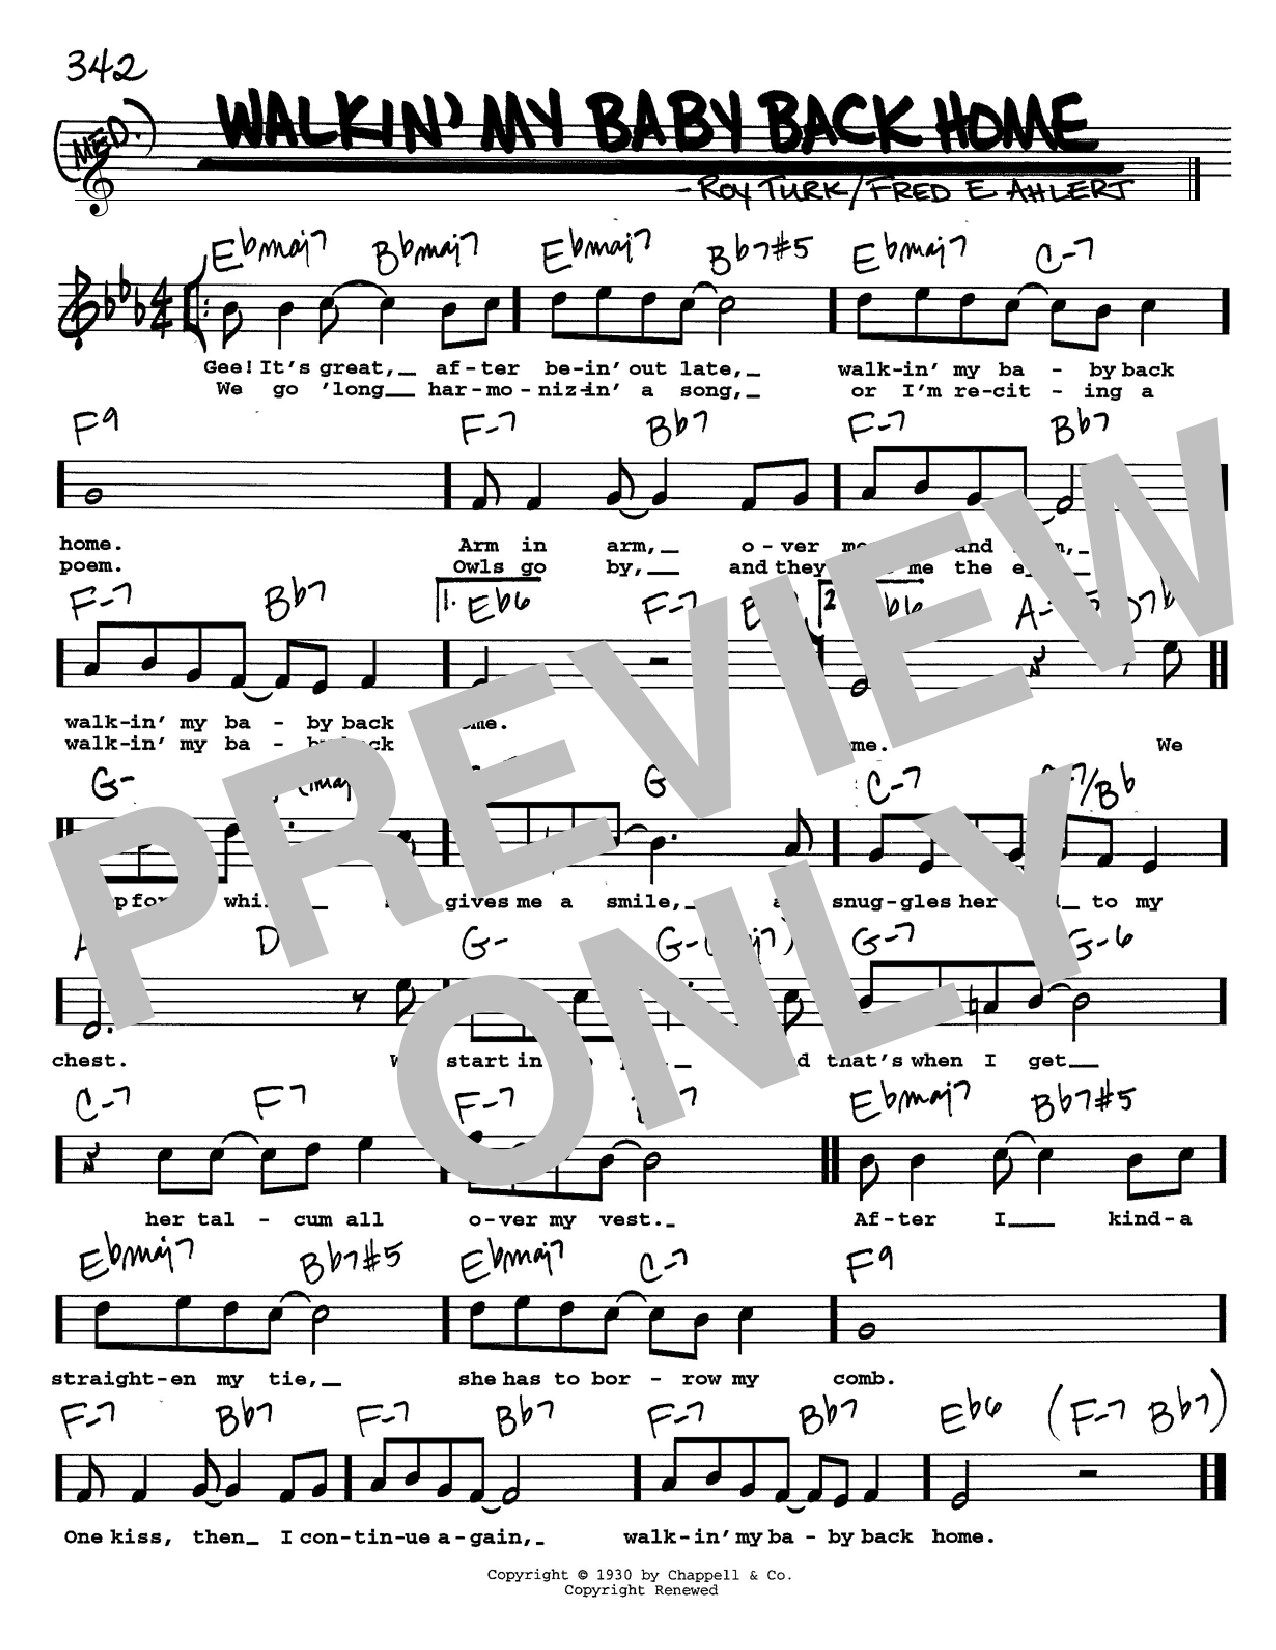 Roy Turk Walkin' My Baby Back Home sheet music notes and chords. Download Printable PDF.